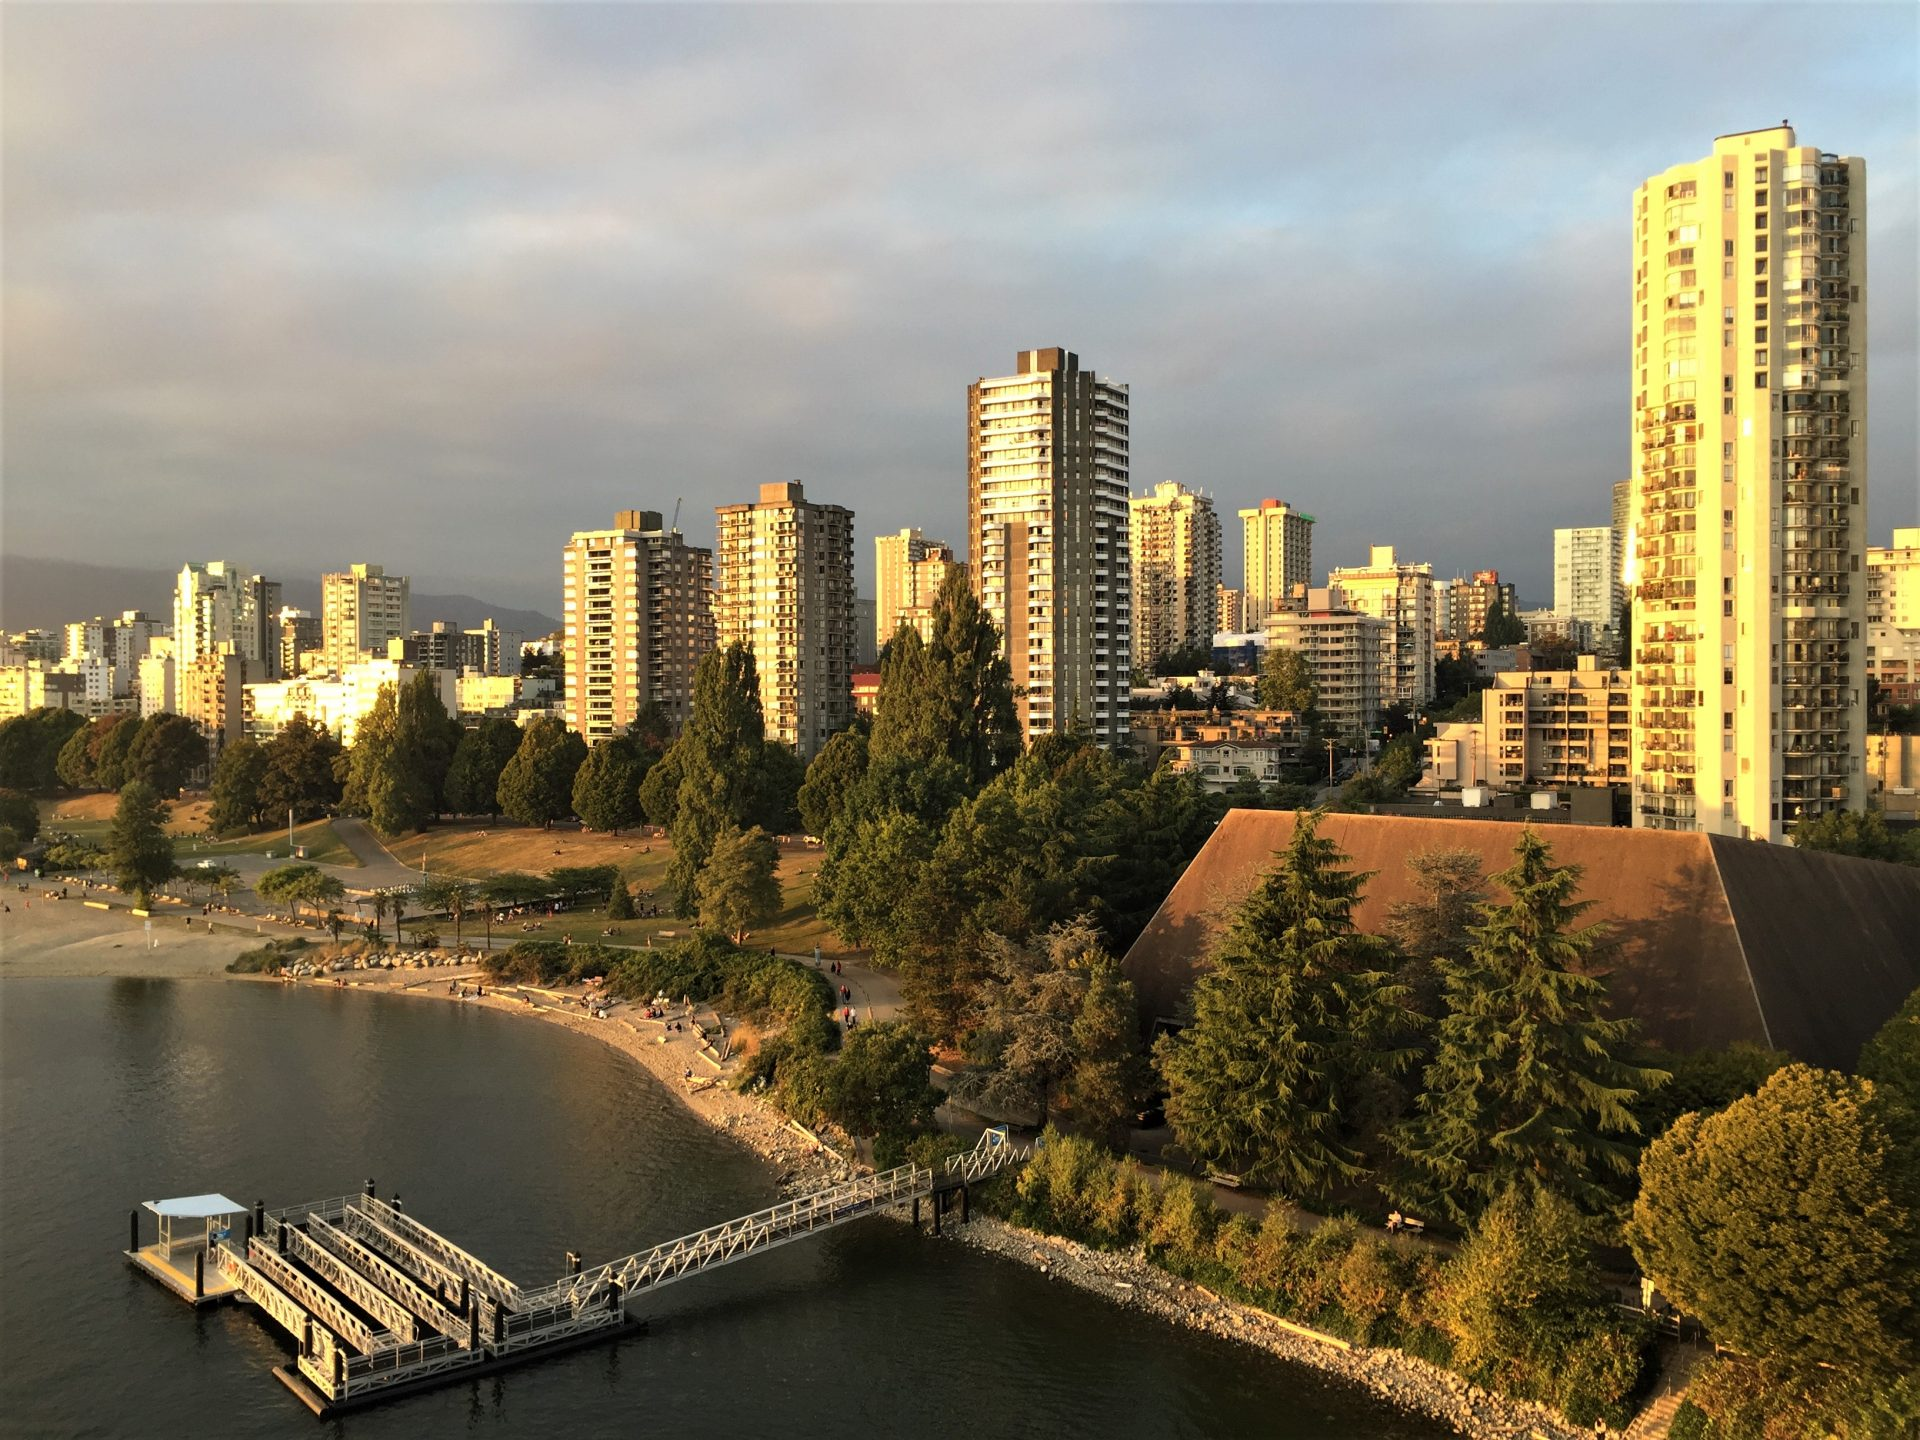 Vancouver – Part 1 (Sept 5 to 10)